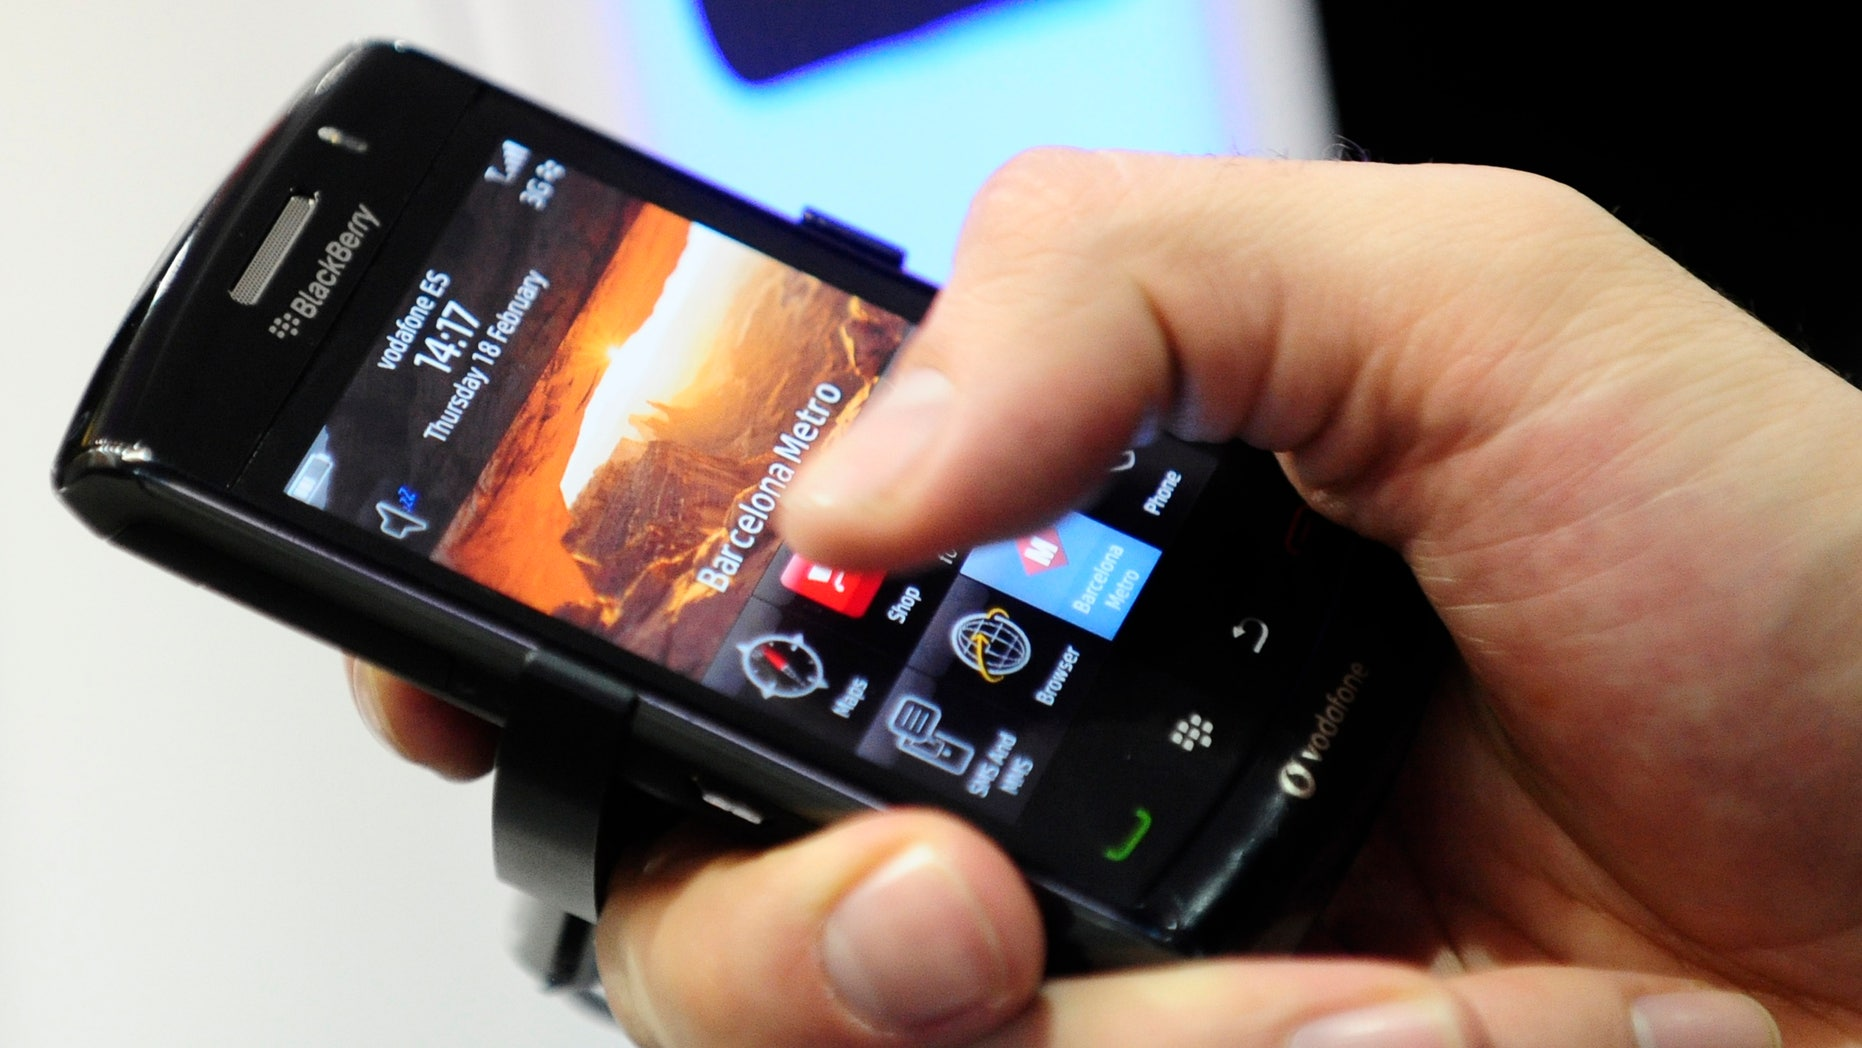 FILE - In this Feb. 18, 2010 file photo, a BlackBerry smart phone is displayed at the Mobile World congress in Barcelona, Spain. The UAE said Sunday, Aug. 1, 2010 it will block key features on BlackBerry smart phones, citing national security concerns because the devices operate beyond the government's ability to monitor their use. Neighboring Saudi Arabia quickly indicated it planned to follow suit. (AP Photo/Manu Fernandez, File)